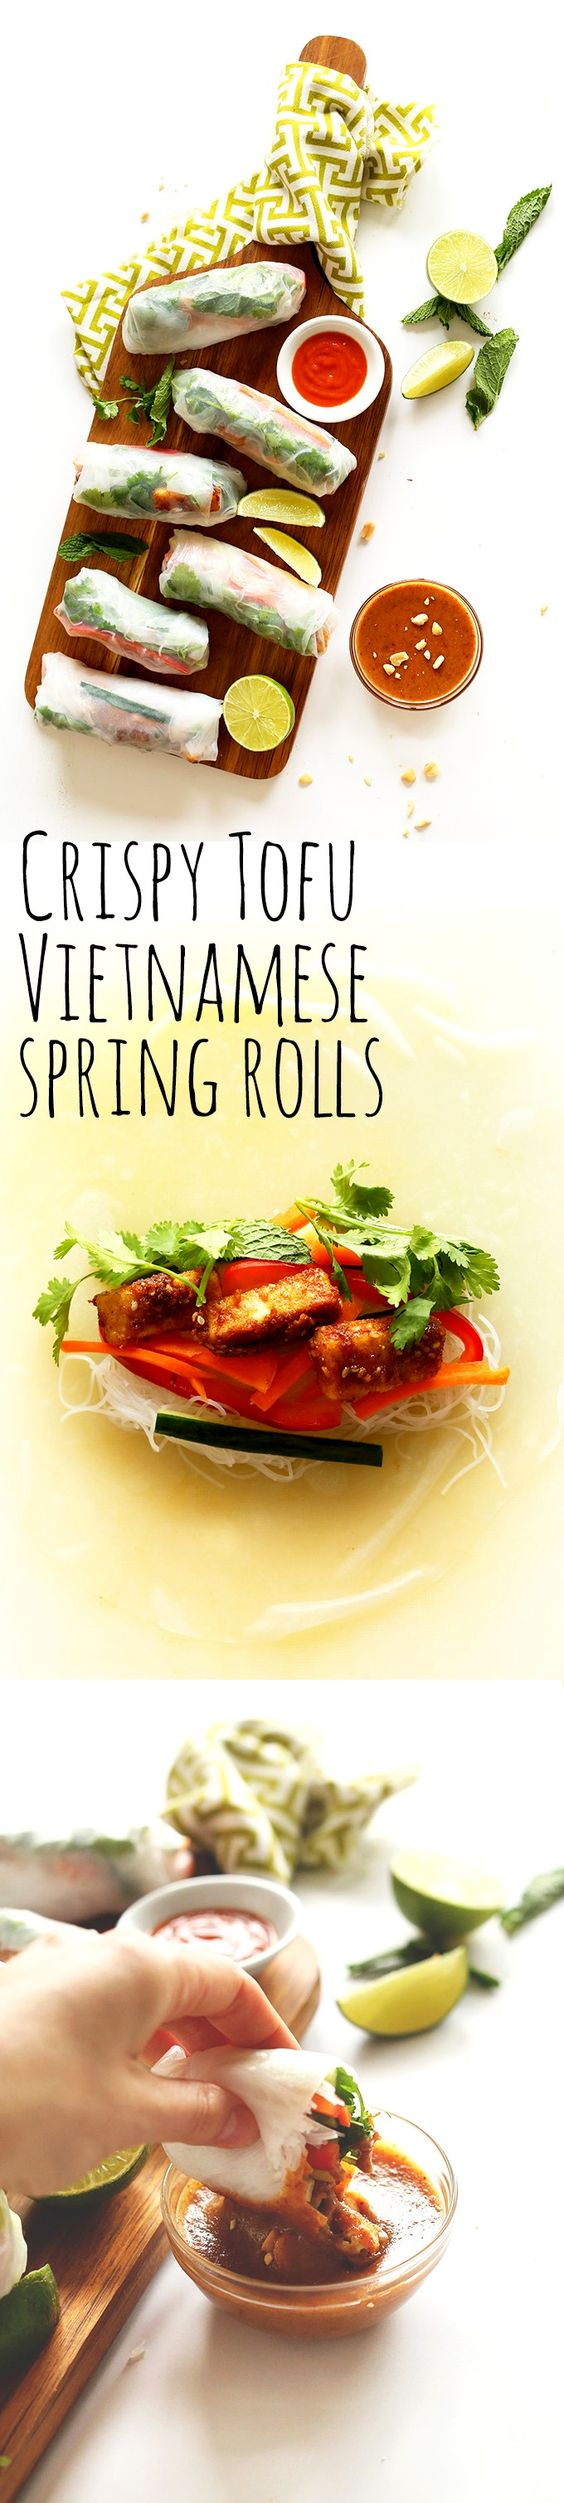 Vietnamese Spring Rolls with Crispy Tofu | Recipe ...